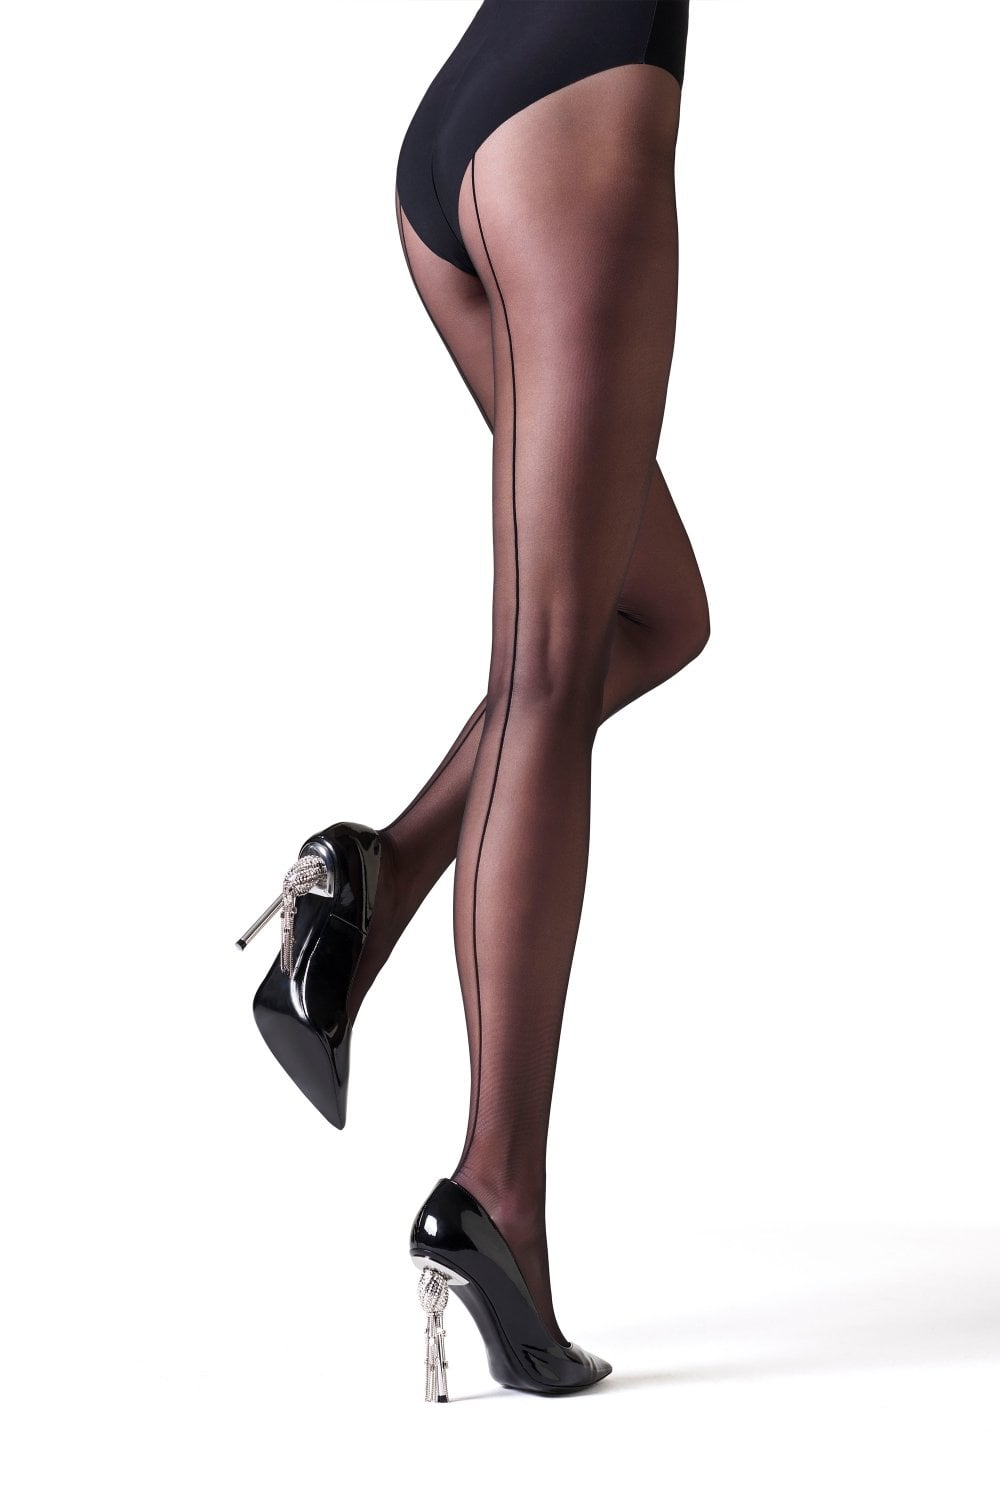 official cheapest new york La Perla Elsa Seamed Tights | Seamed Tights at Leglicious